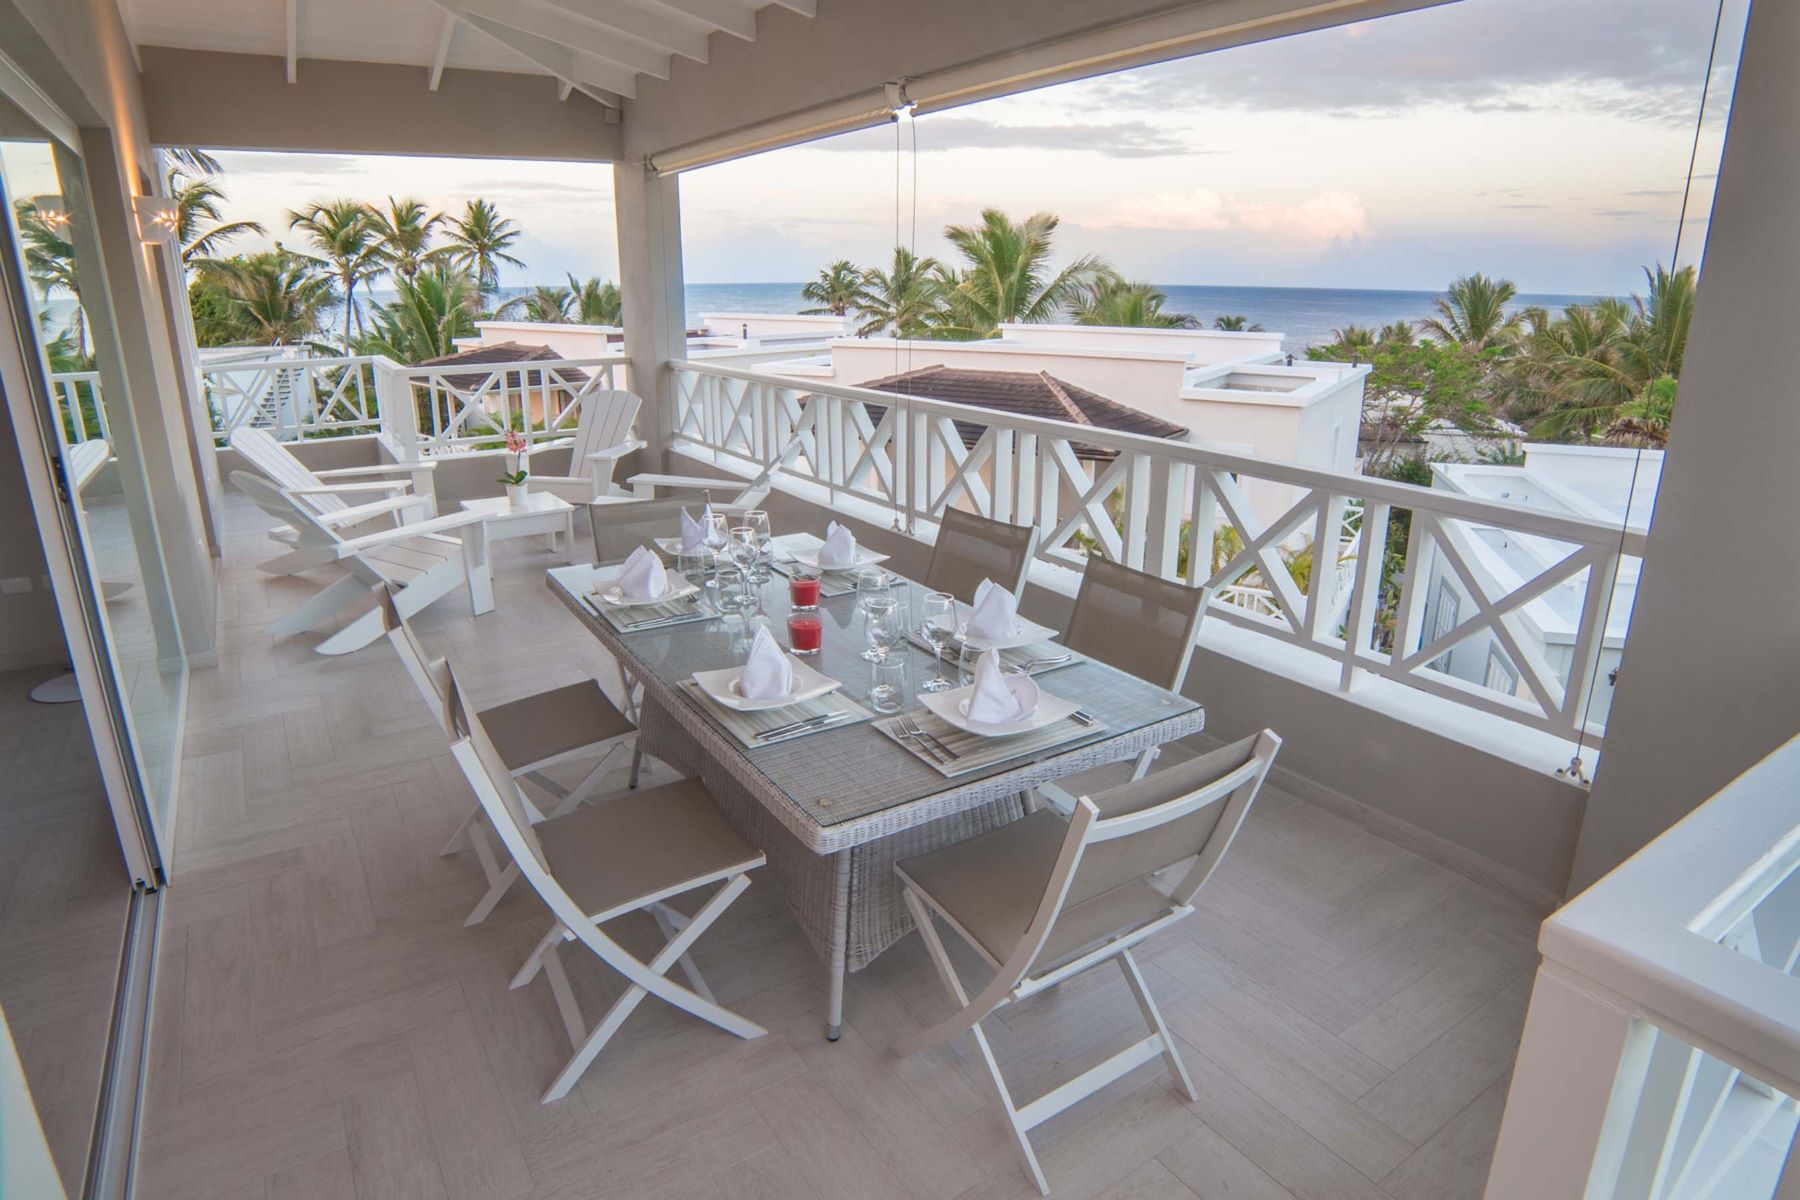 Condominium for Sale at Spectacular Ocean View Penthouse along the Caribbean sea Dominicus, La Romana, Dominican Republic